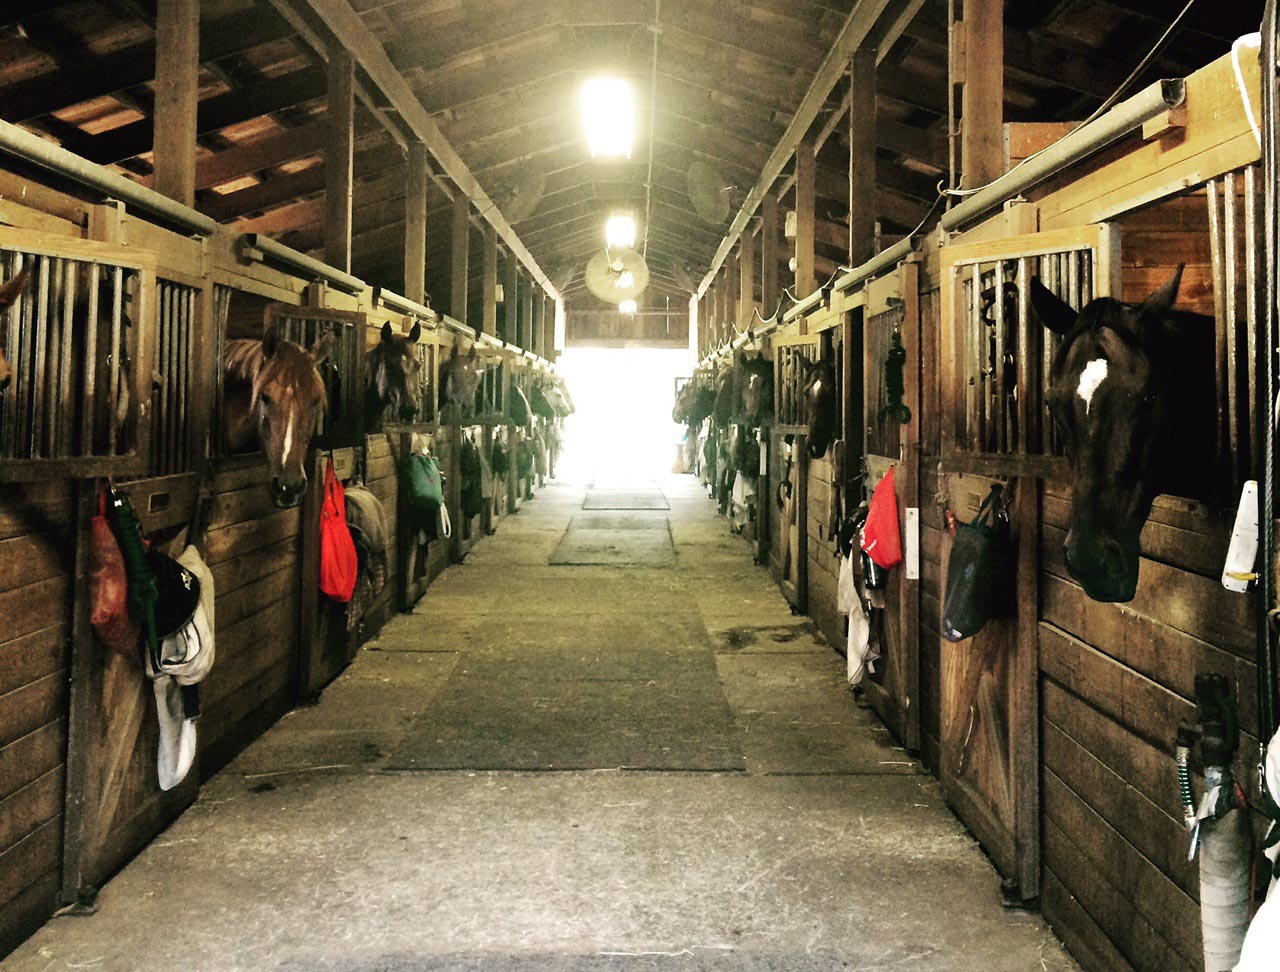 Copy of Horses in the barn at feeding time